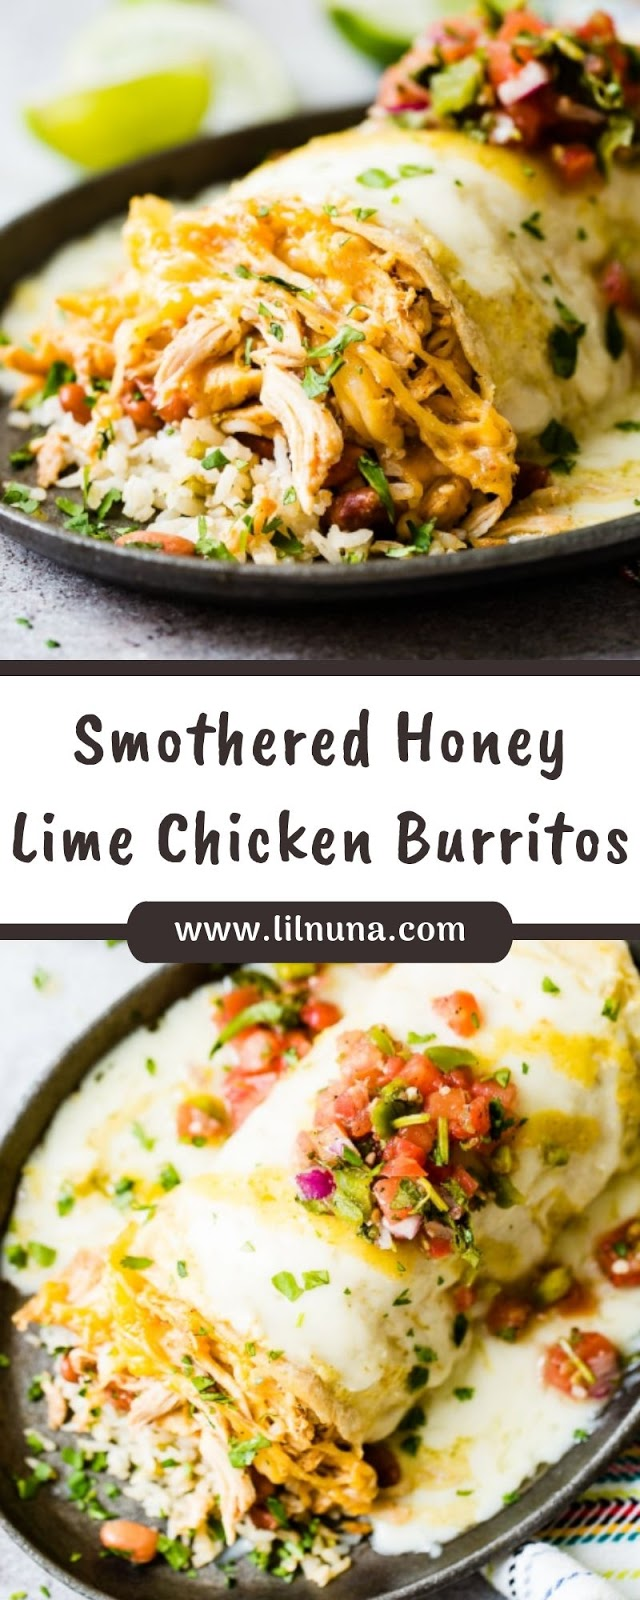 Lilnuna: Smothered Honey Lime Chicken Burritos